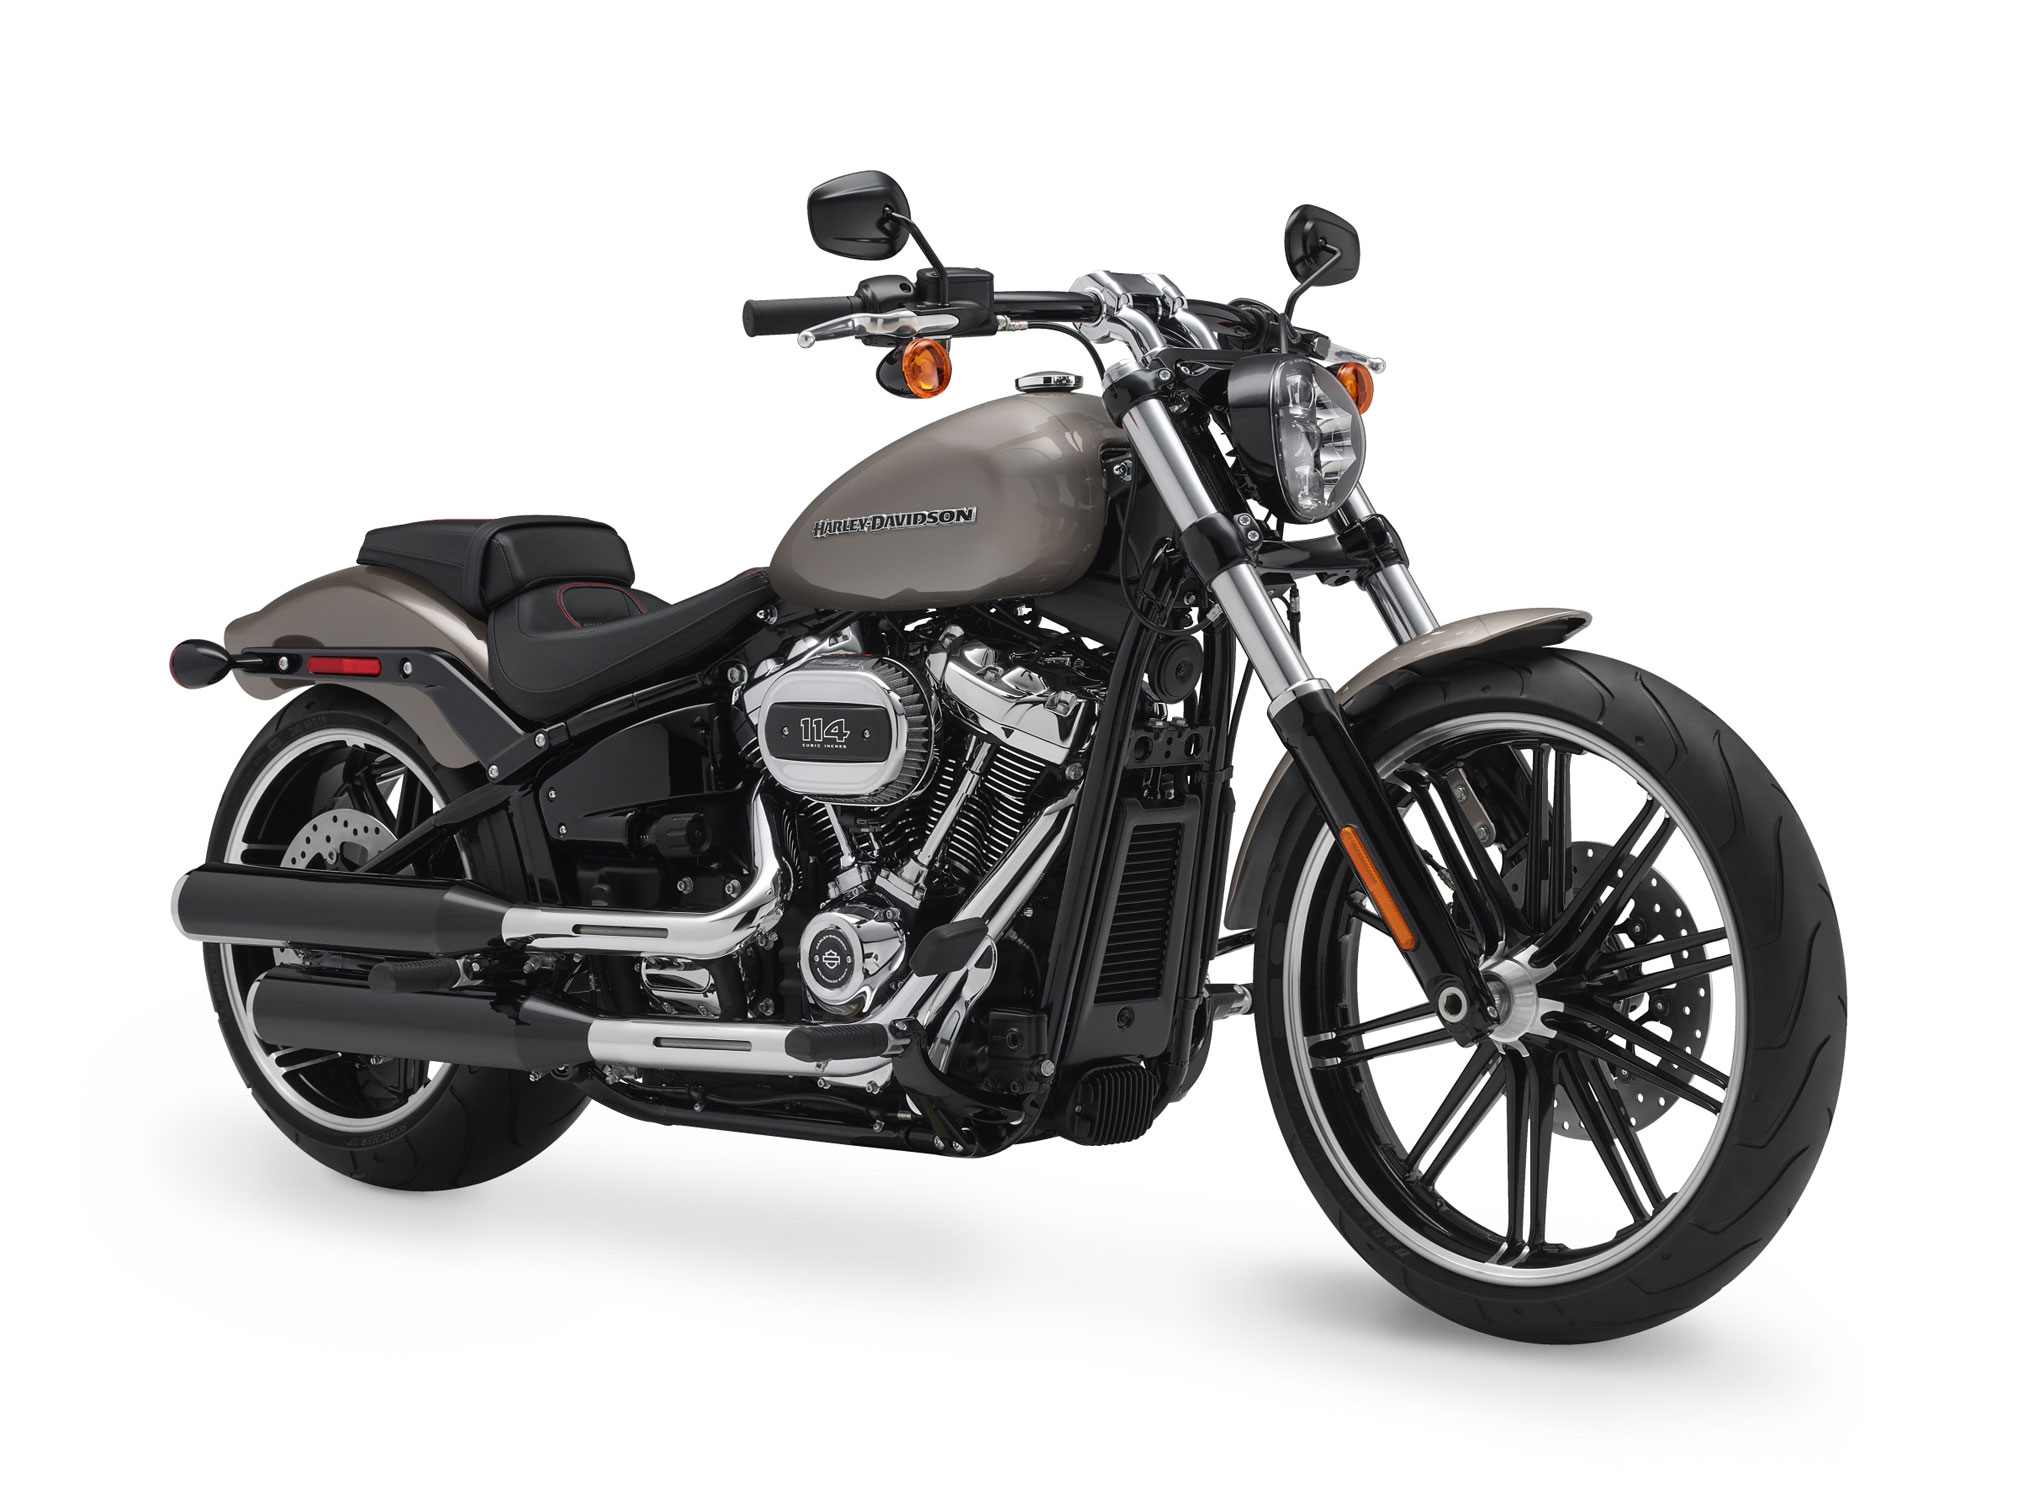 2018 Harley-Davidson Breakout 114 Review - TotalMotorcycle